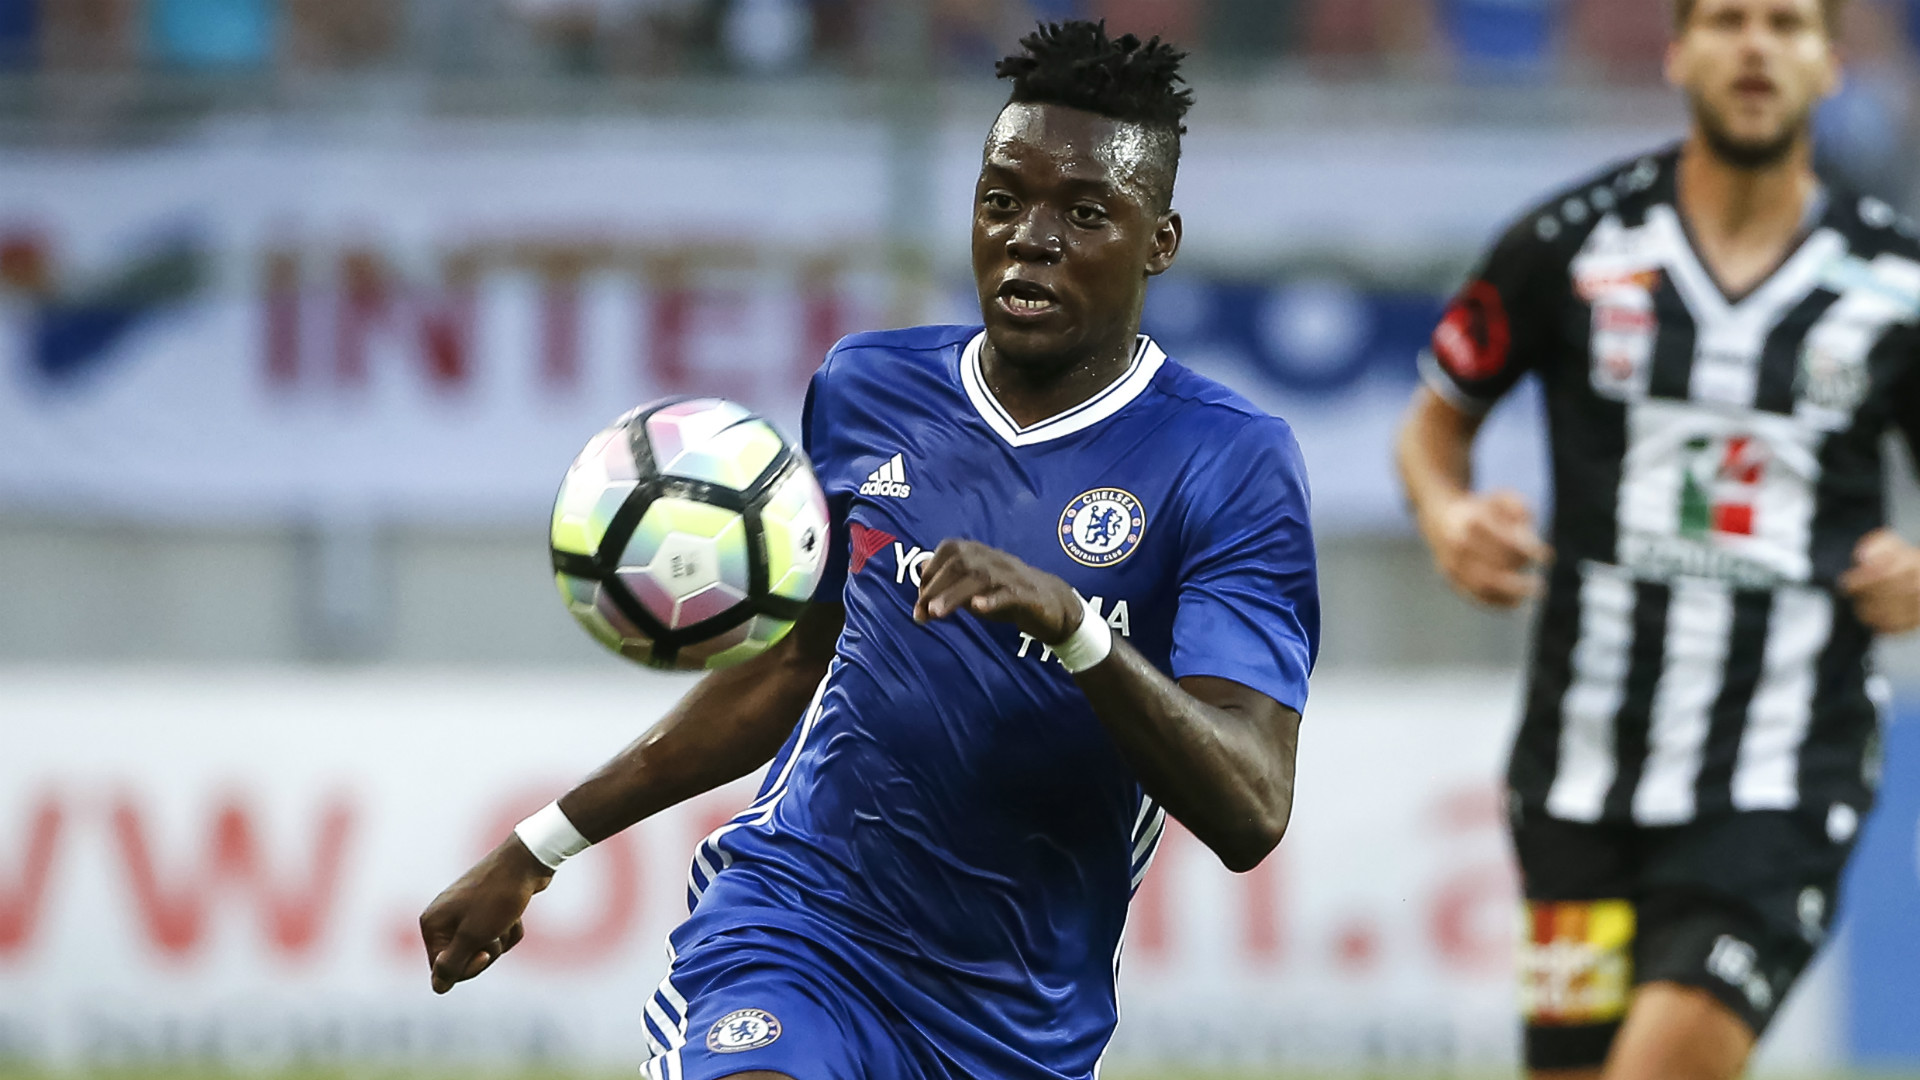 Chelsea could be given two-year transfer ban